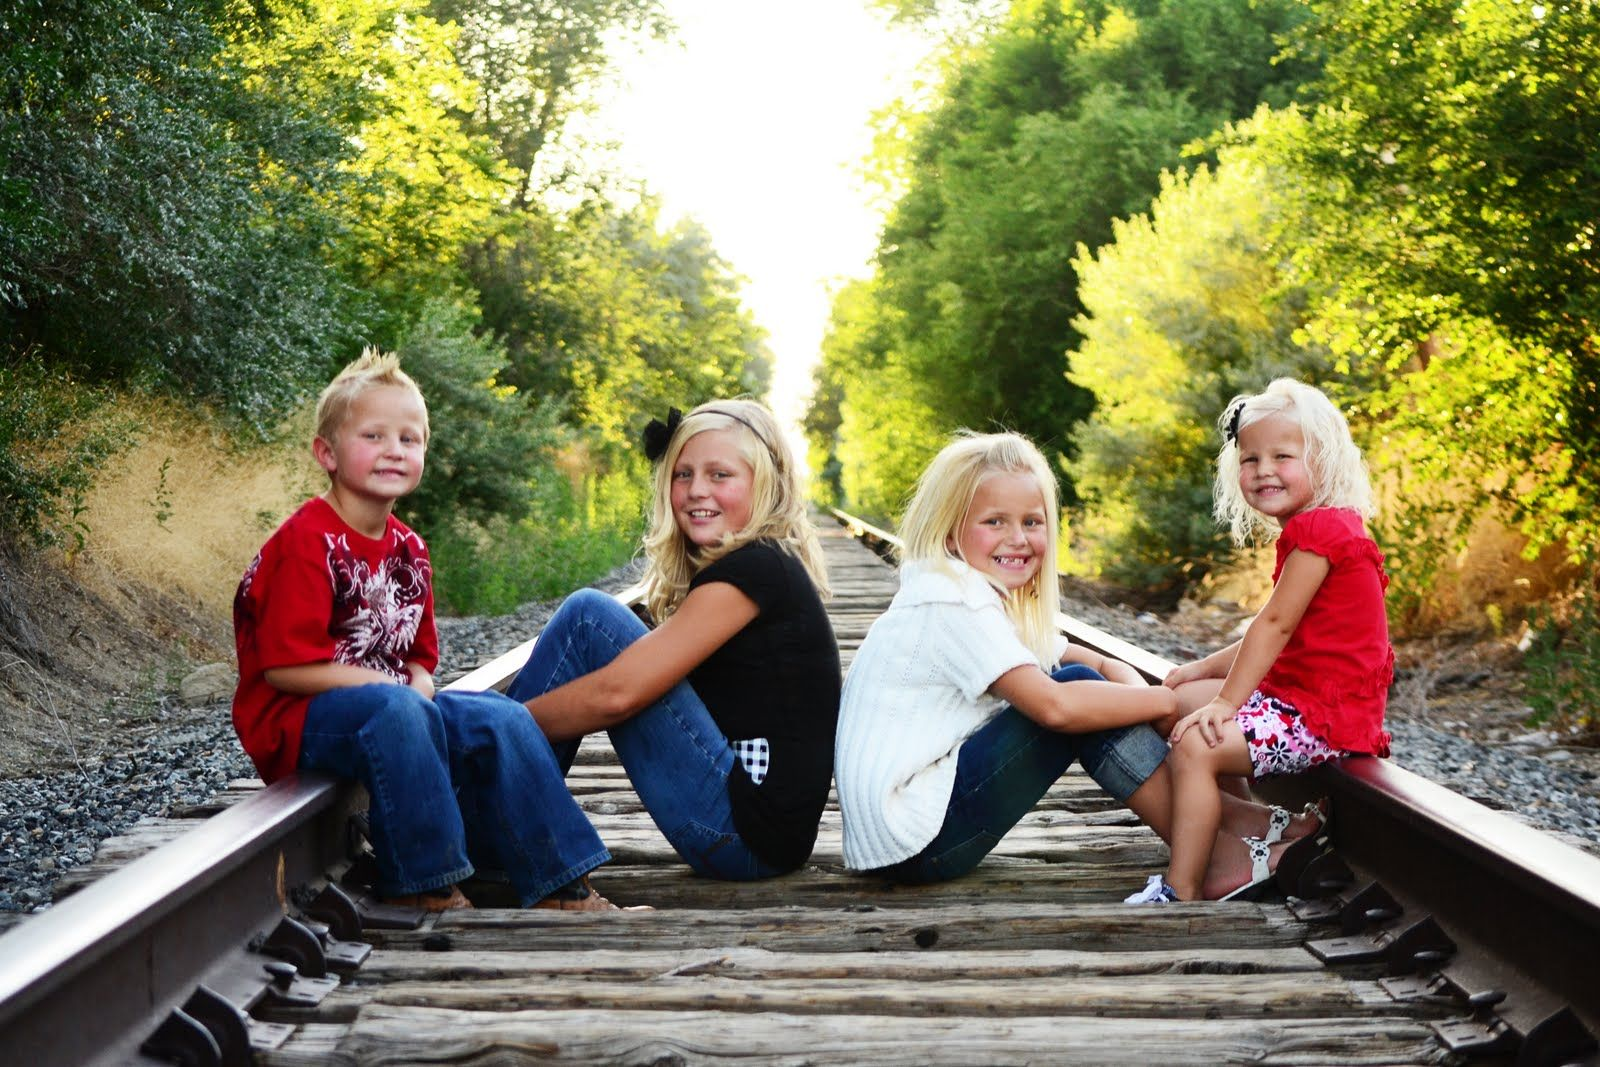 Photography family Poses On Railroad Tracks | Email This BlogThis! Share to Twitter Share to Facebook #grandkidsphotography